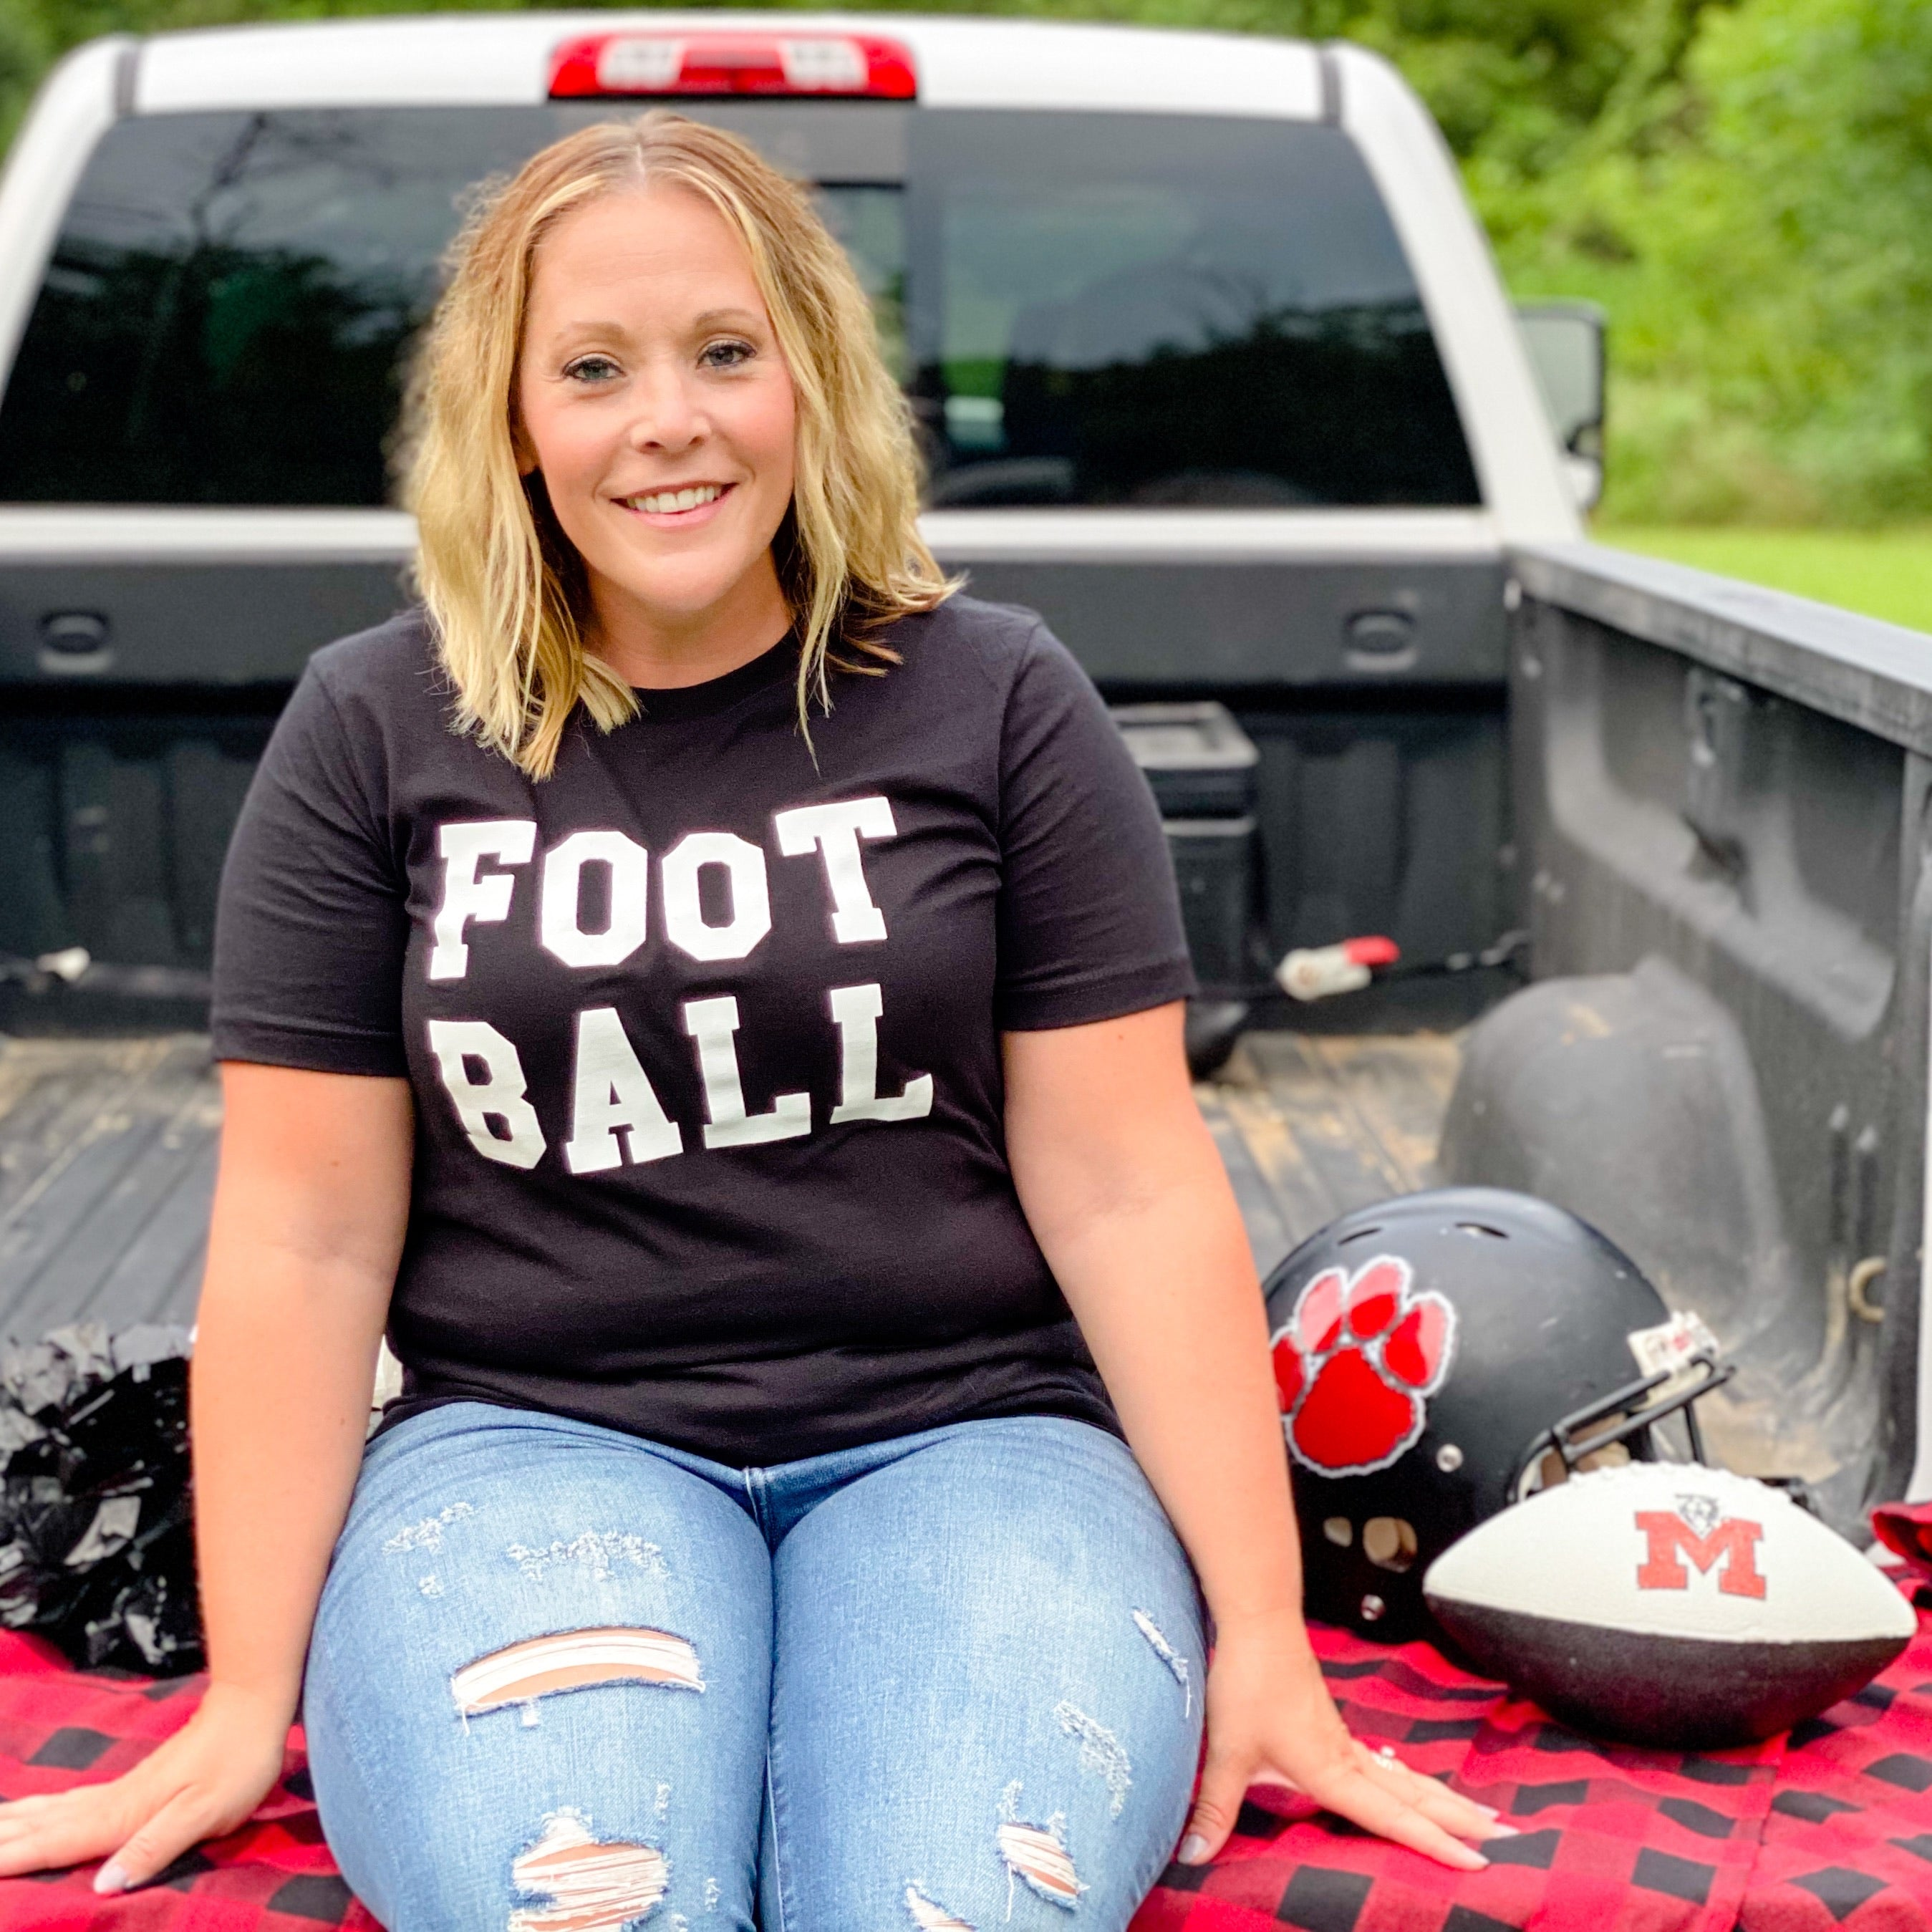 Black Foot Ball Tee